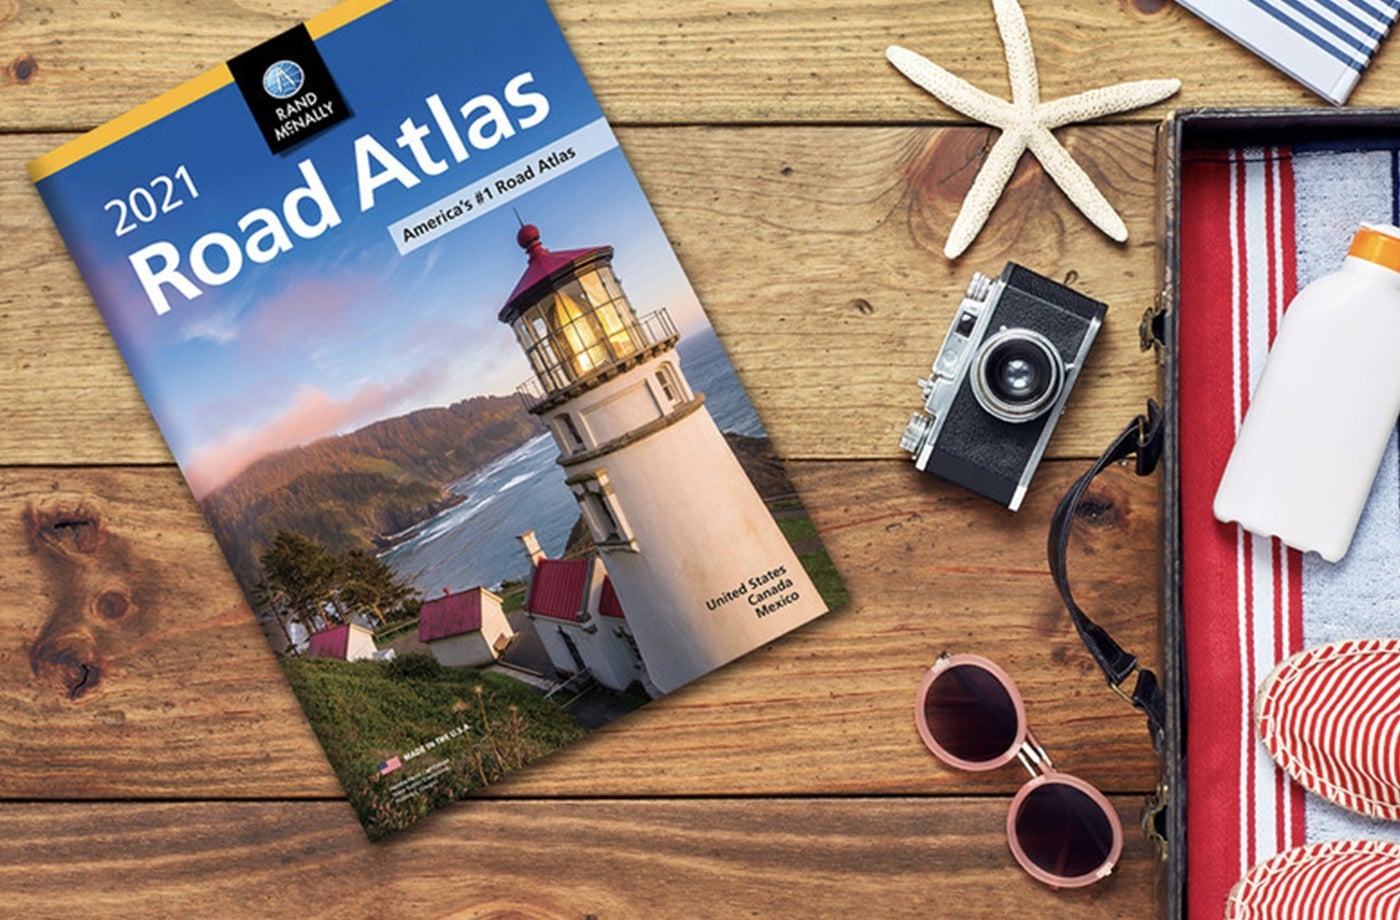 Rand McNally Road Atlas on top of wooden table along with sunglasses, a camera, sunscreen and a starfish